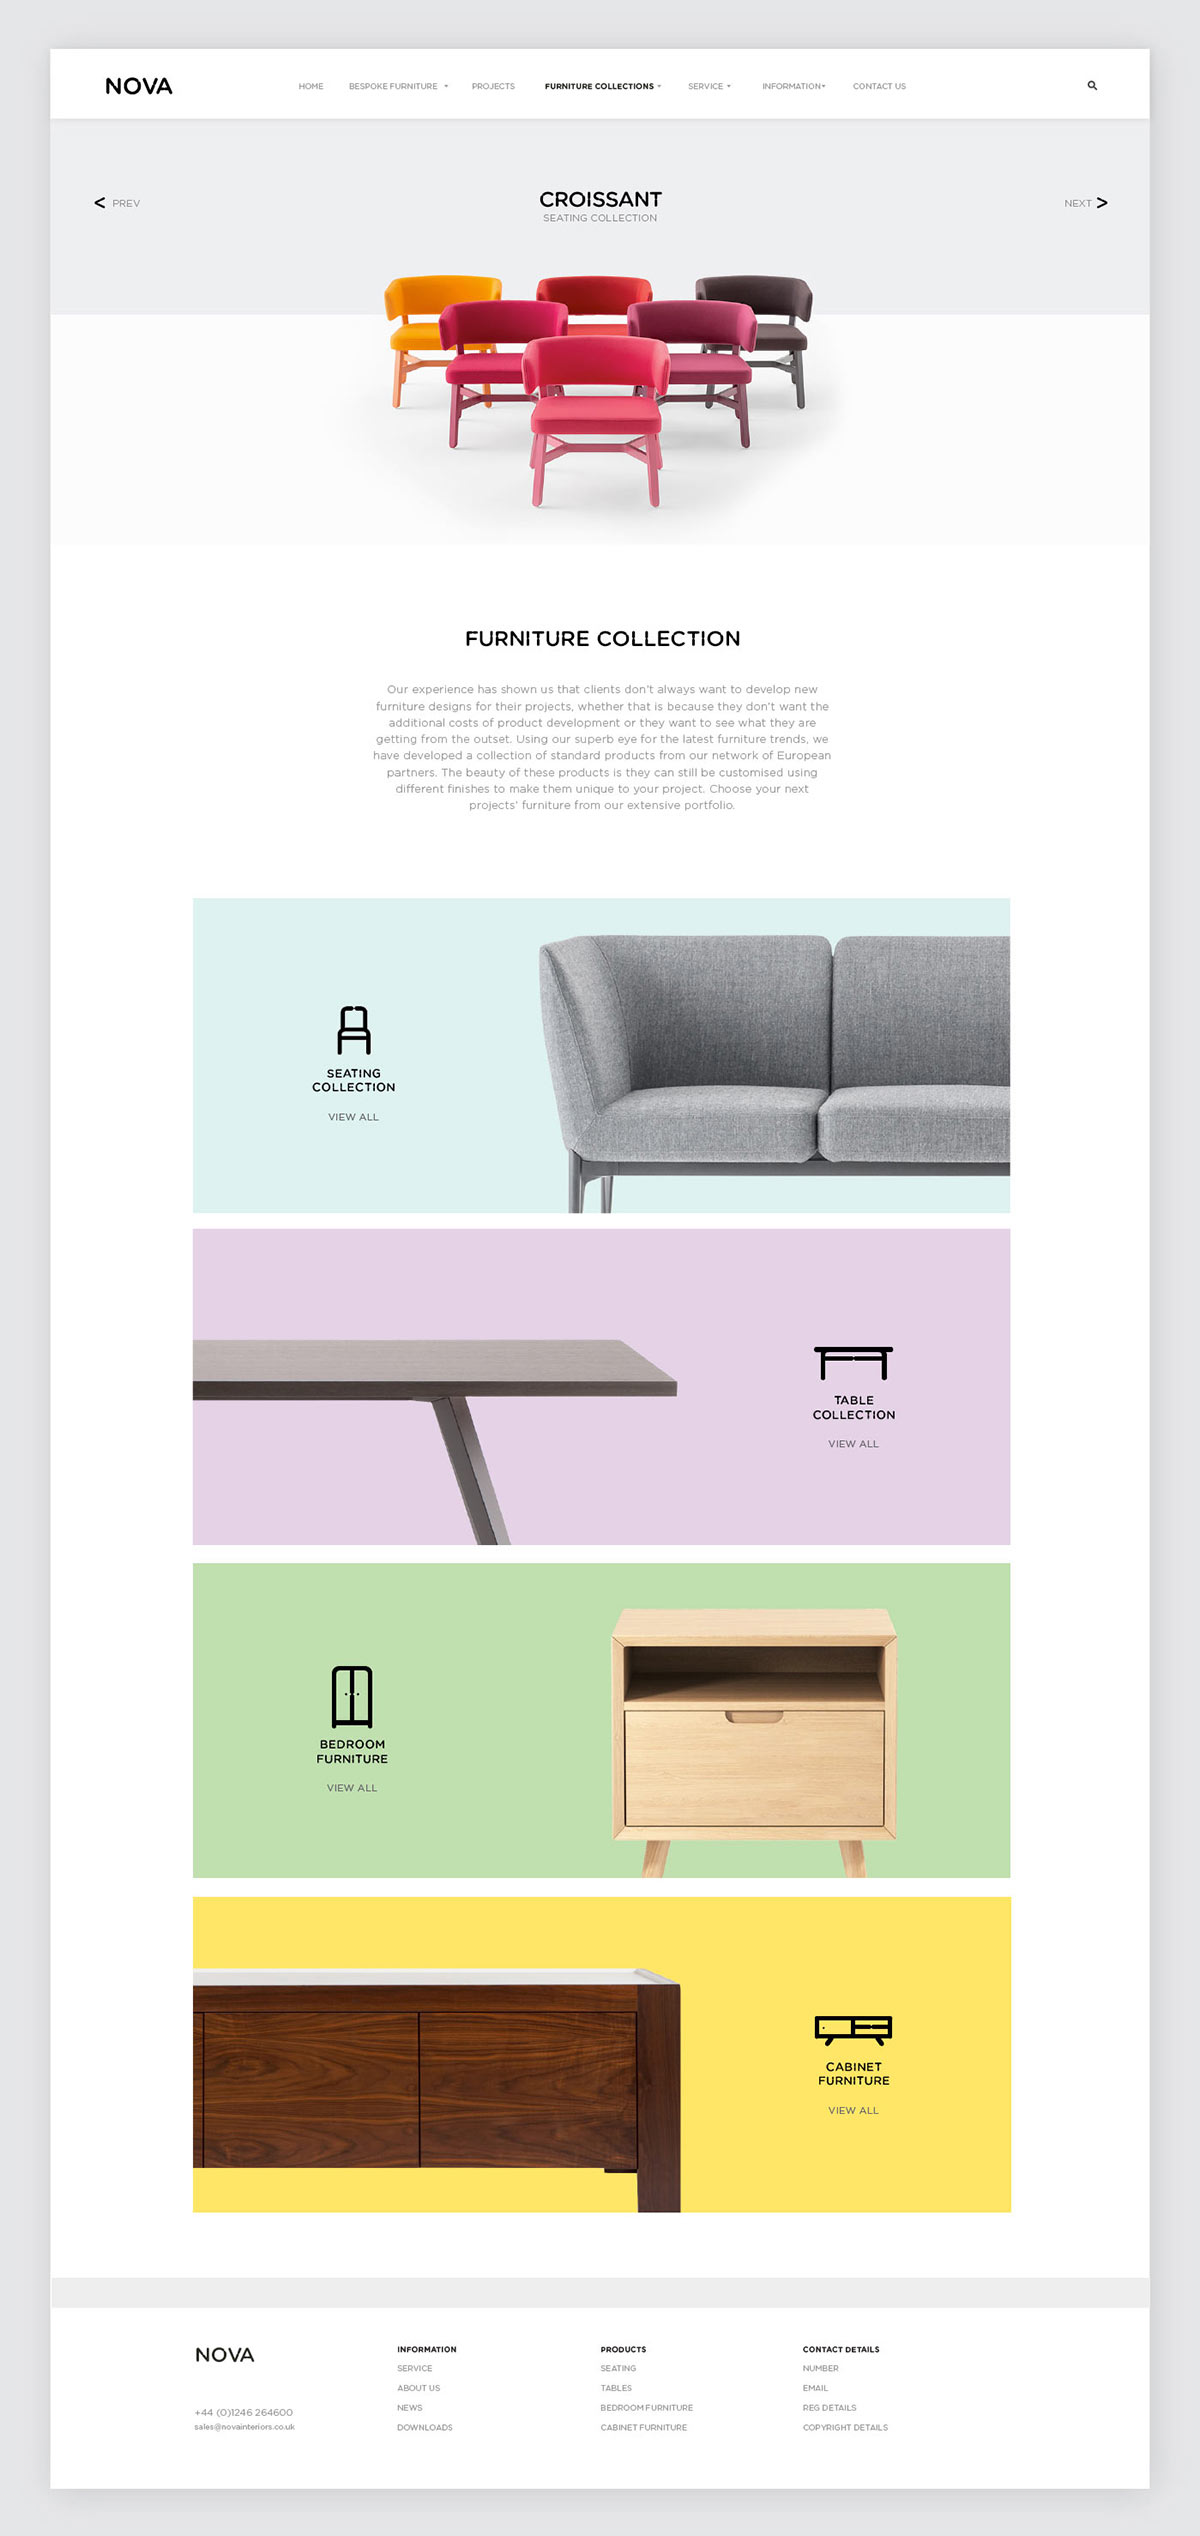 Nova Interiors branding by Side by Side.